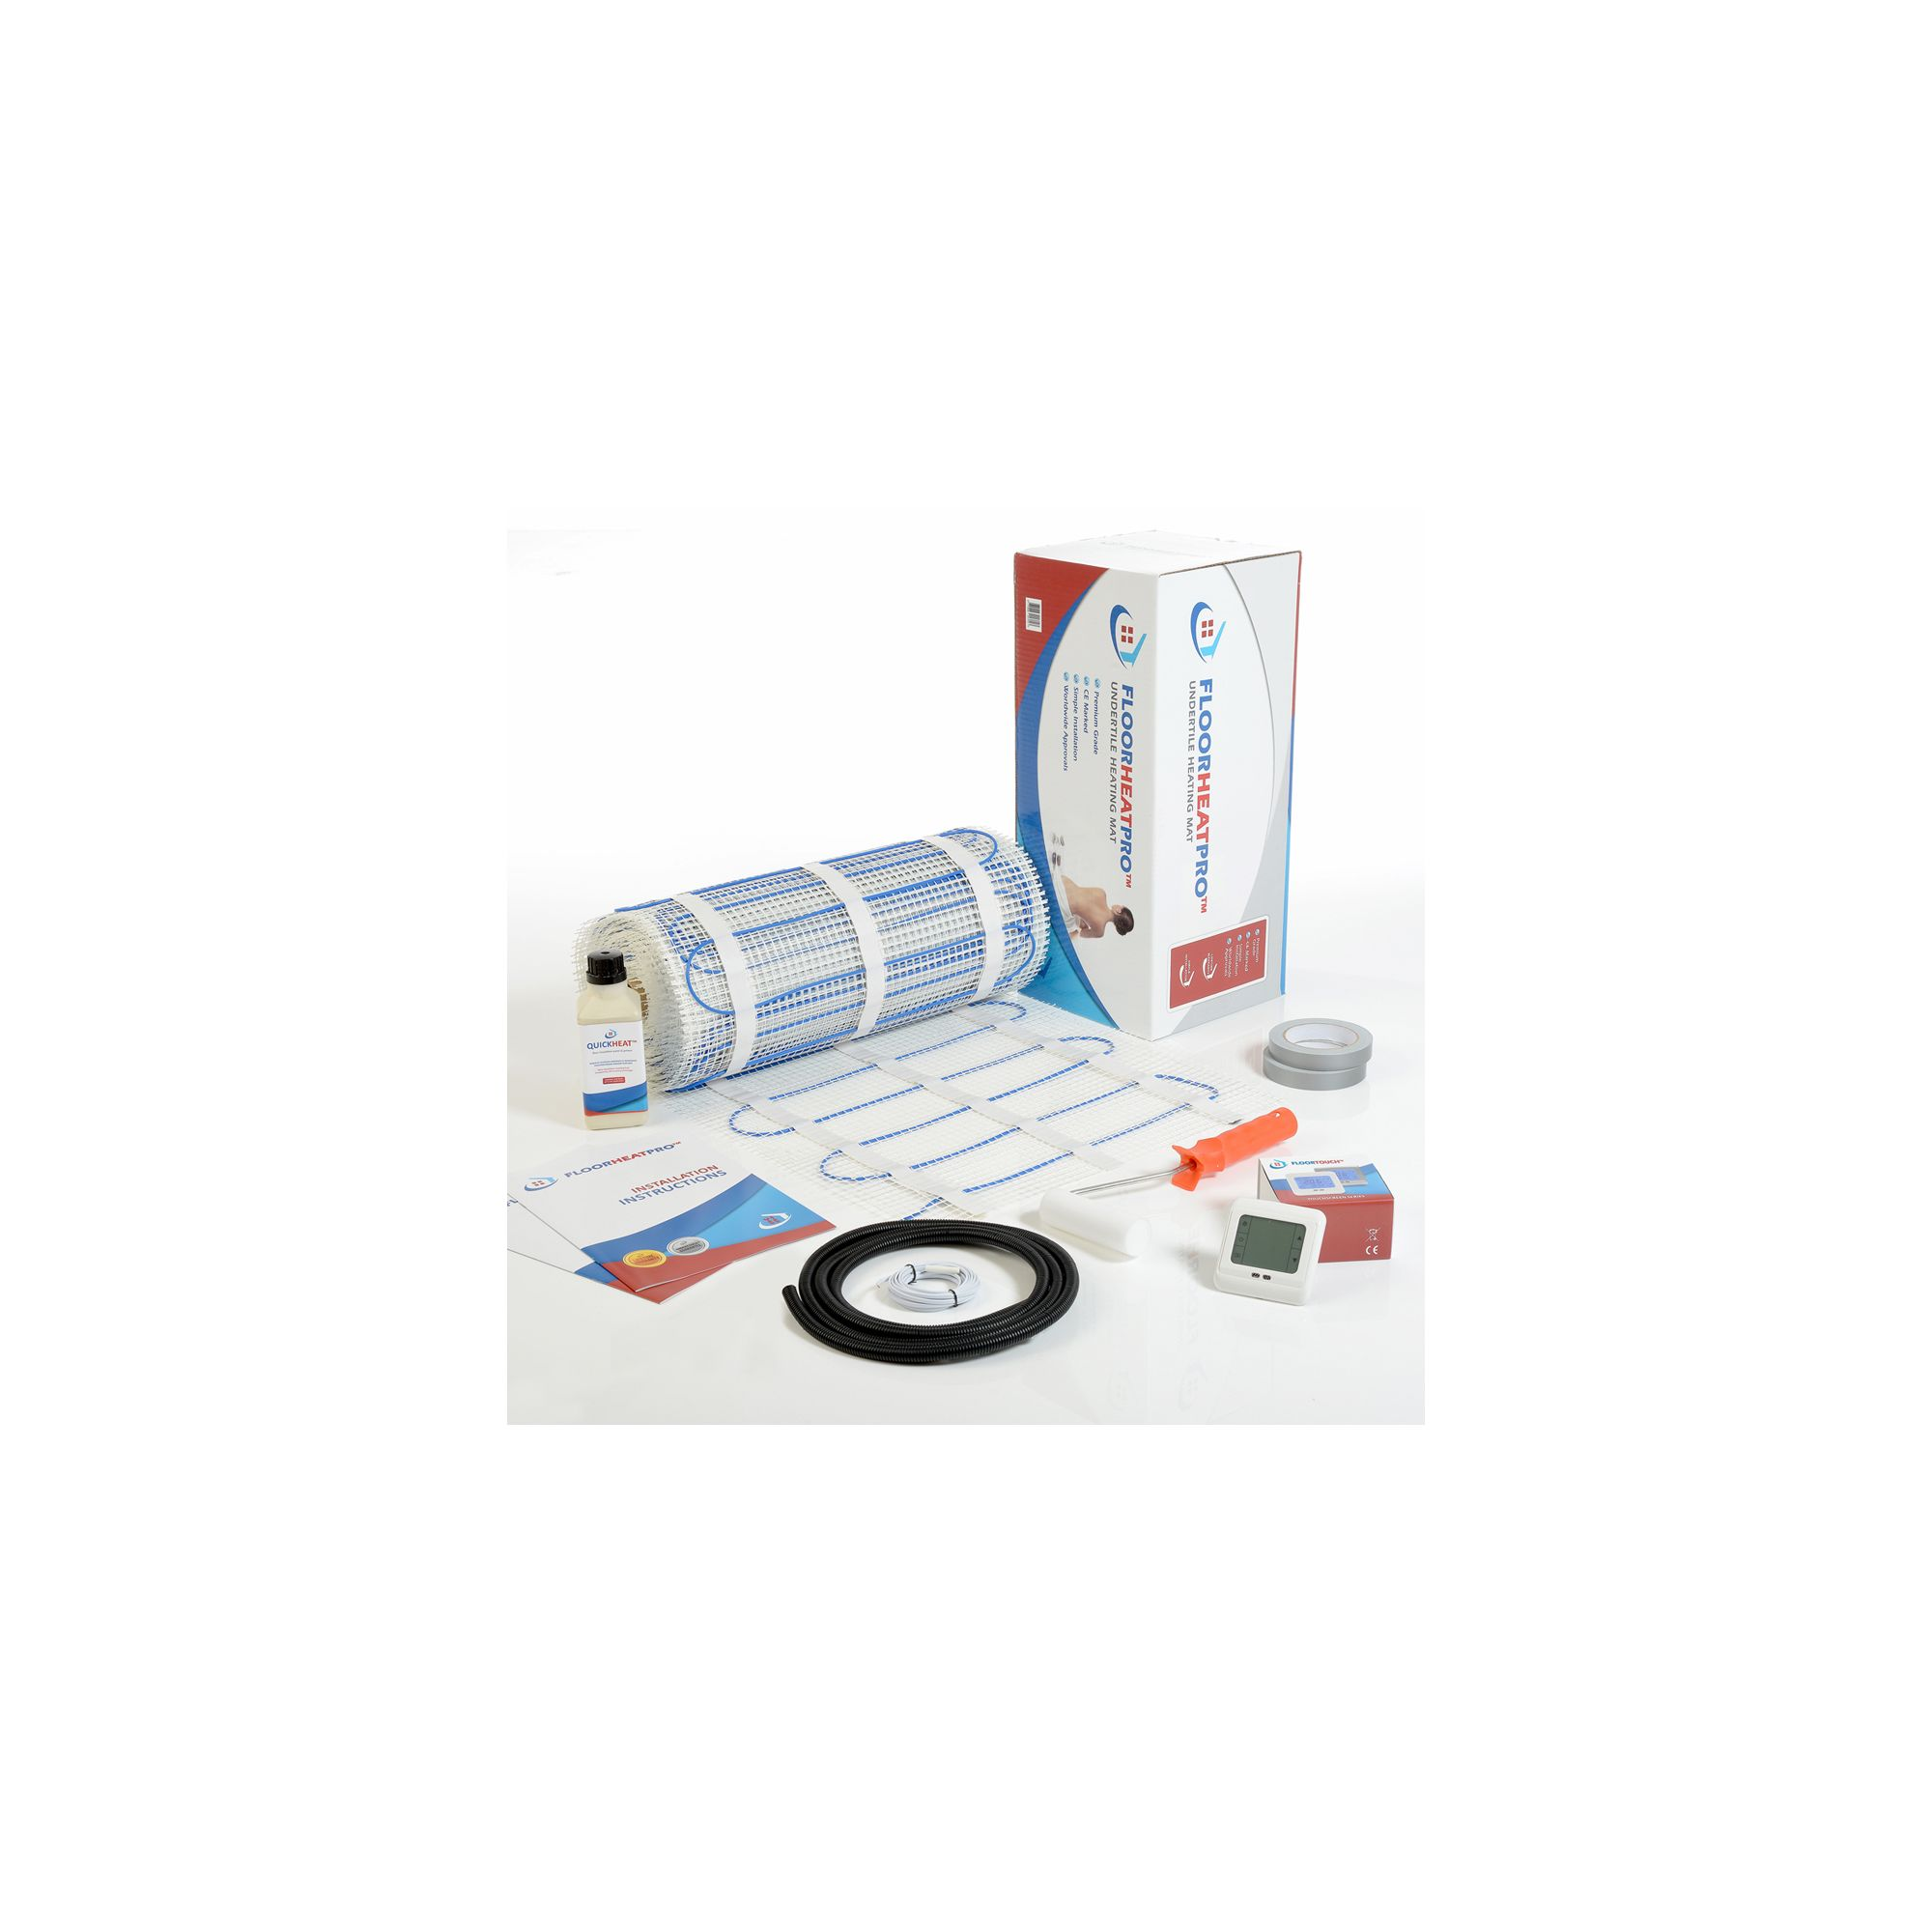 22.0m2 - Underfloor Electric Heating Kit 150w/m2 - Tiles at Tesco Direct